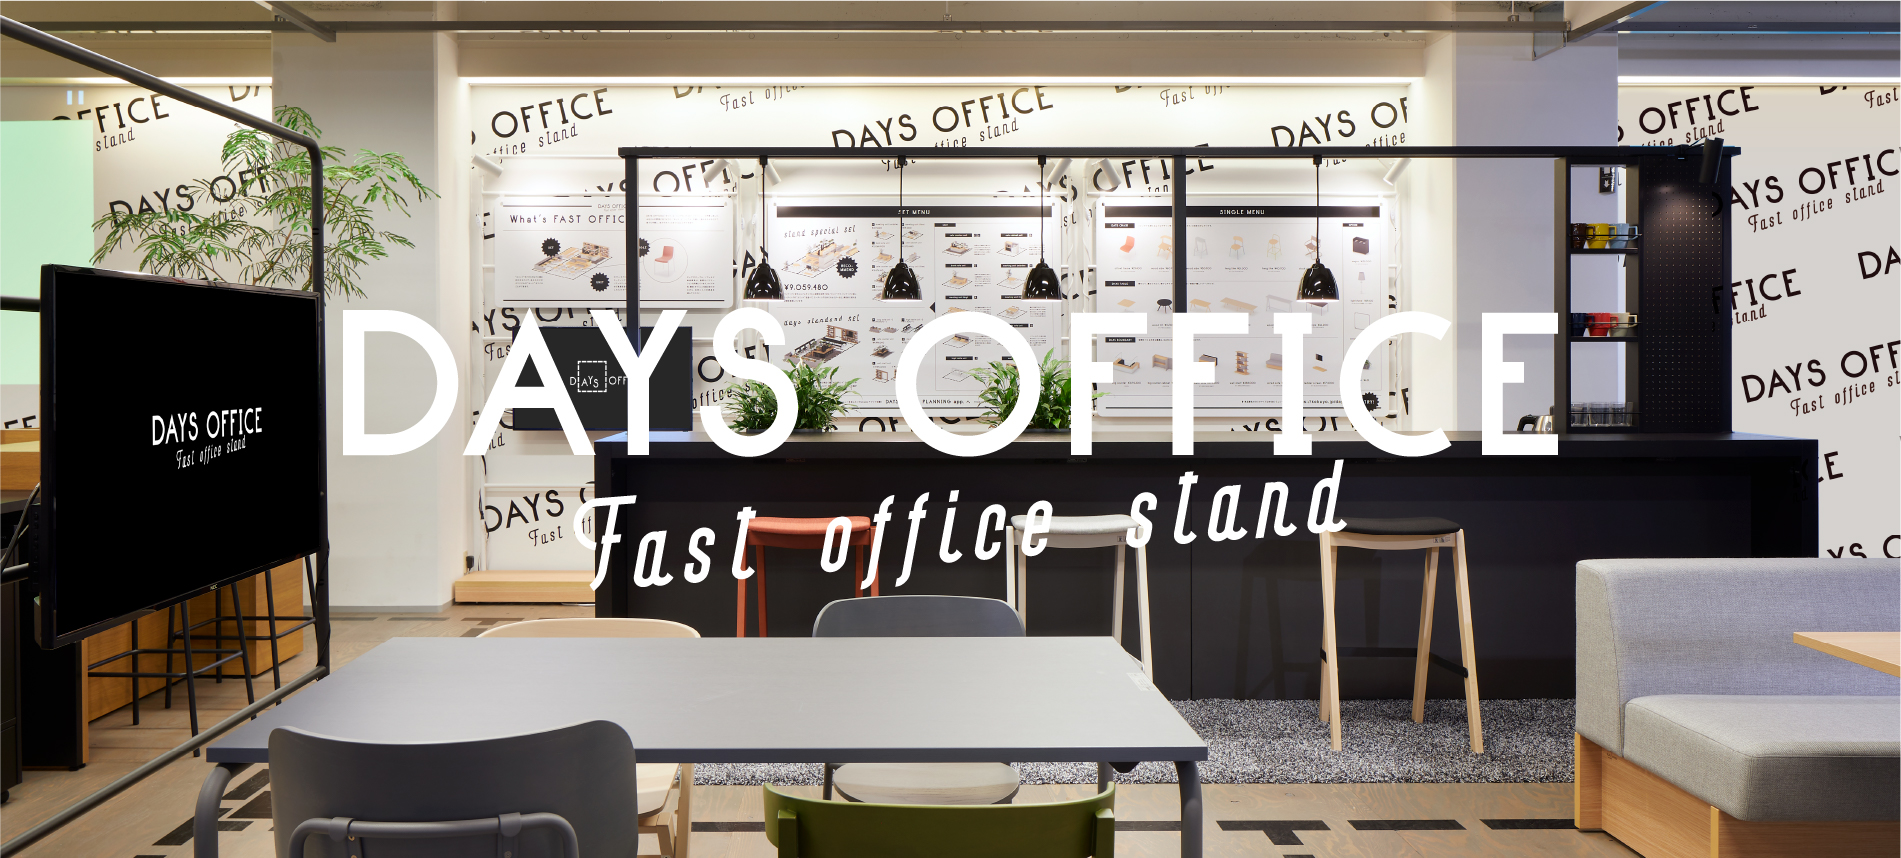 DAYS OFFICE Fast office stand